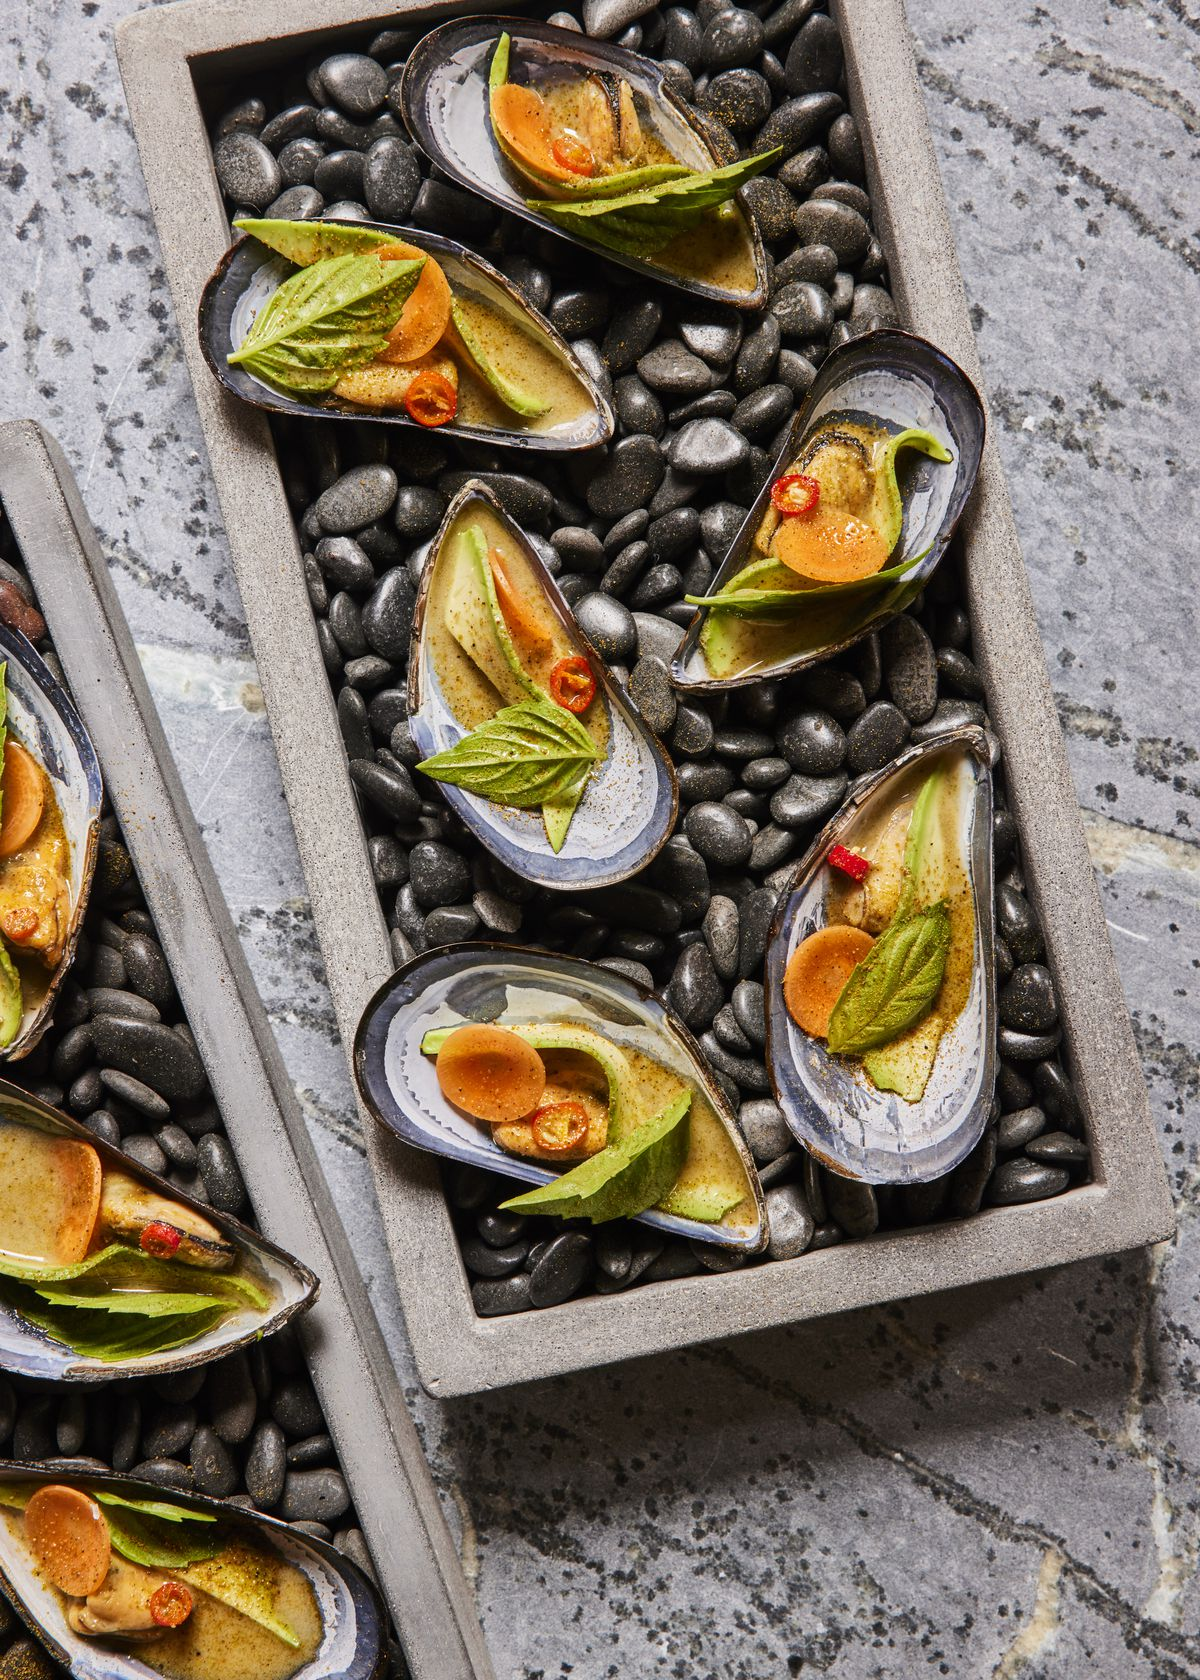 An overhead photograph of a tray of a half-dozen mussels filled with green leaves, and an orange-colored broth